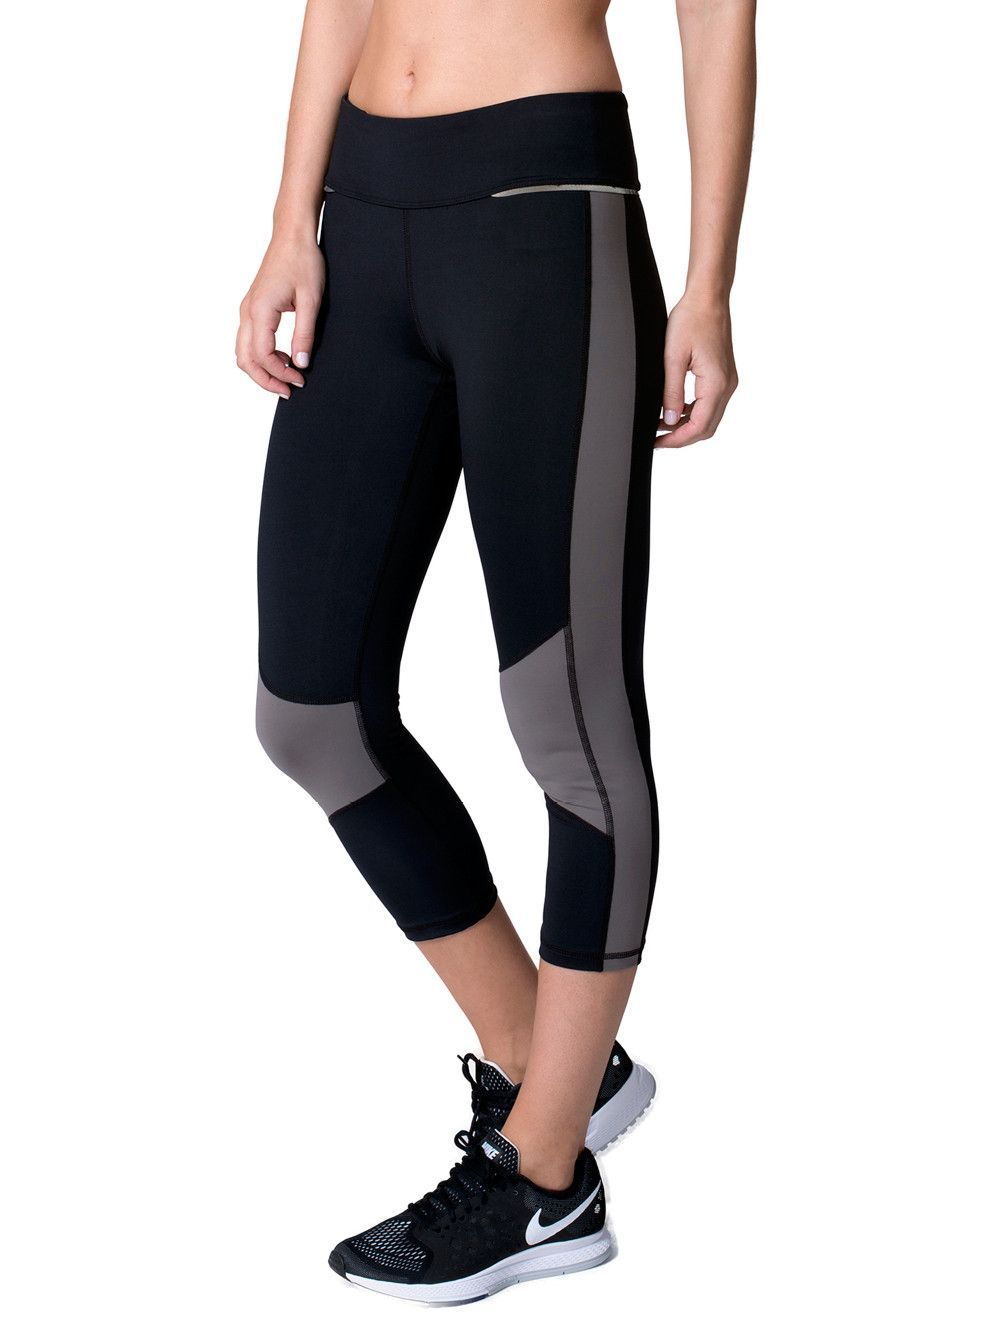 48680e6ce06bef These Are The Ultimate Yoga Pants For Every Pose